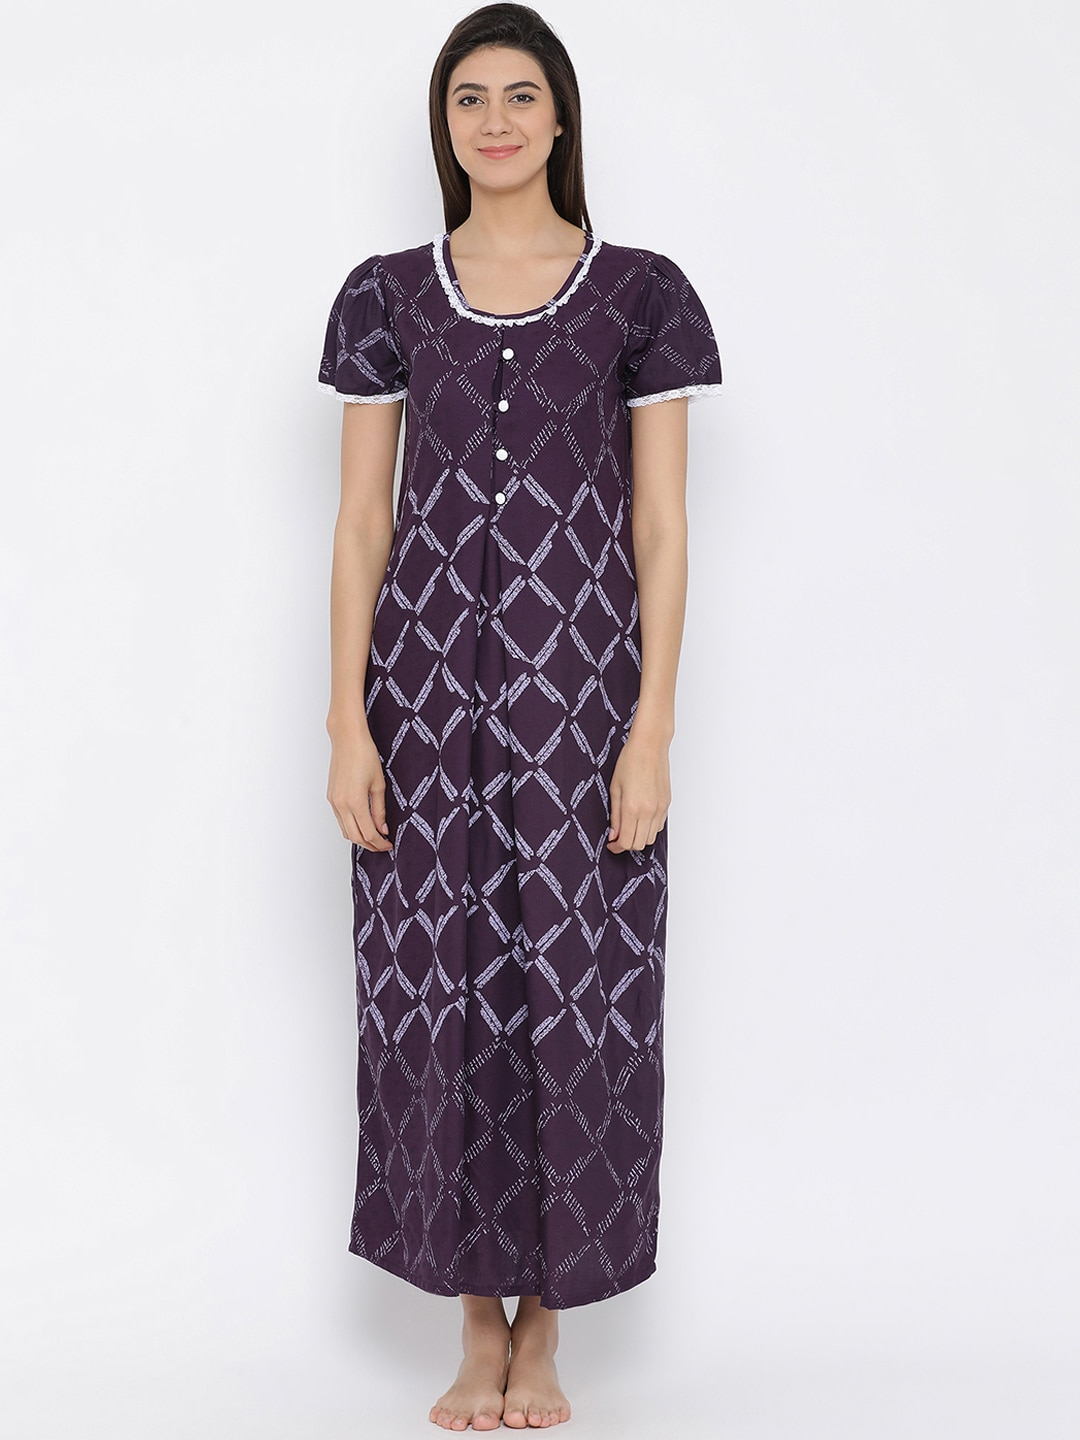 1d0749adea5 Cotton Nightdresses - Buy Cotton Nightdresses Online in India